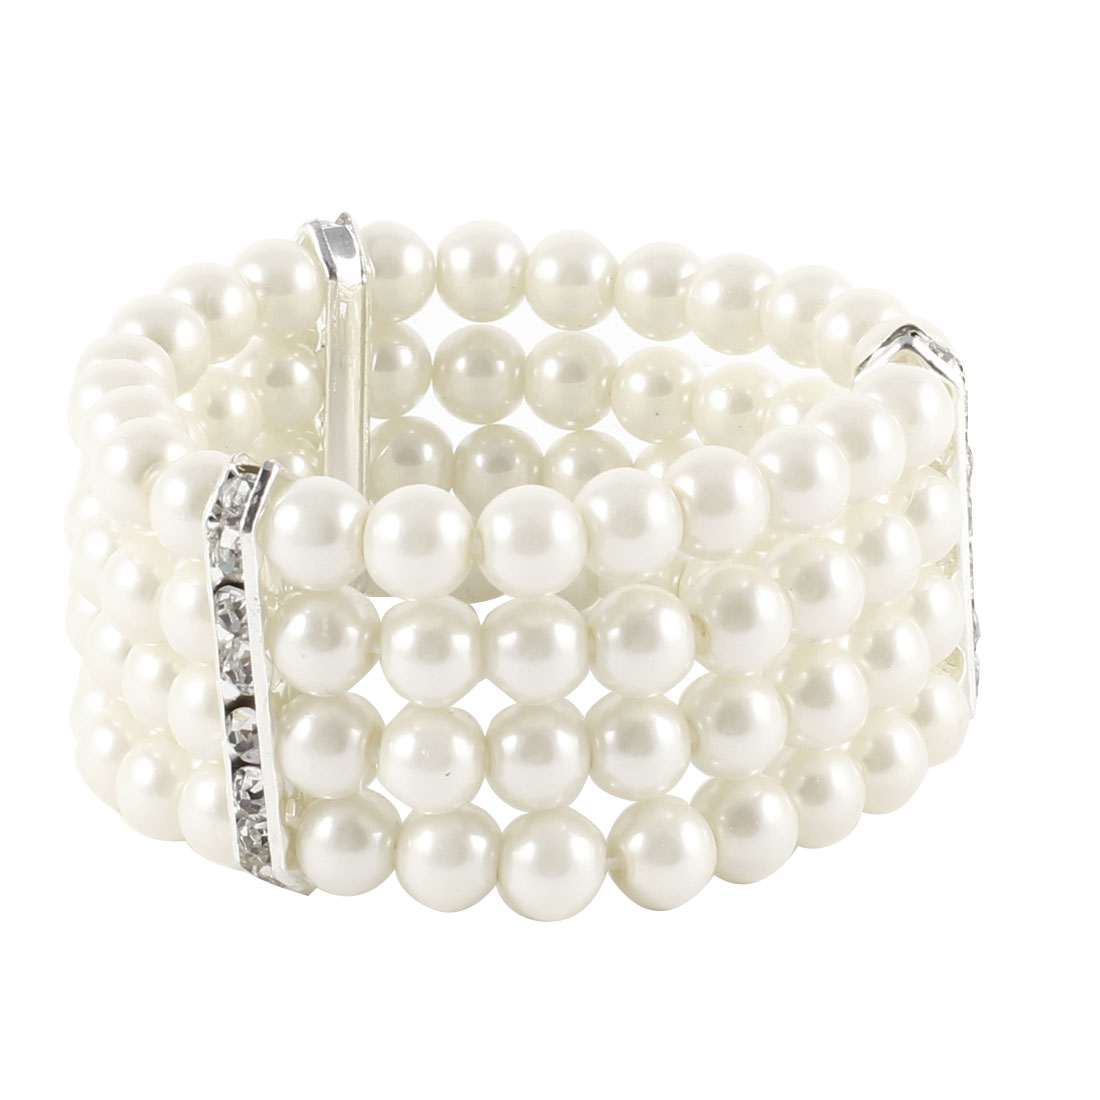 Unique Bargains Women 4 Rows Faux Pearls Accent Off White Stretch Wrist Bracelet Jewelry